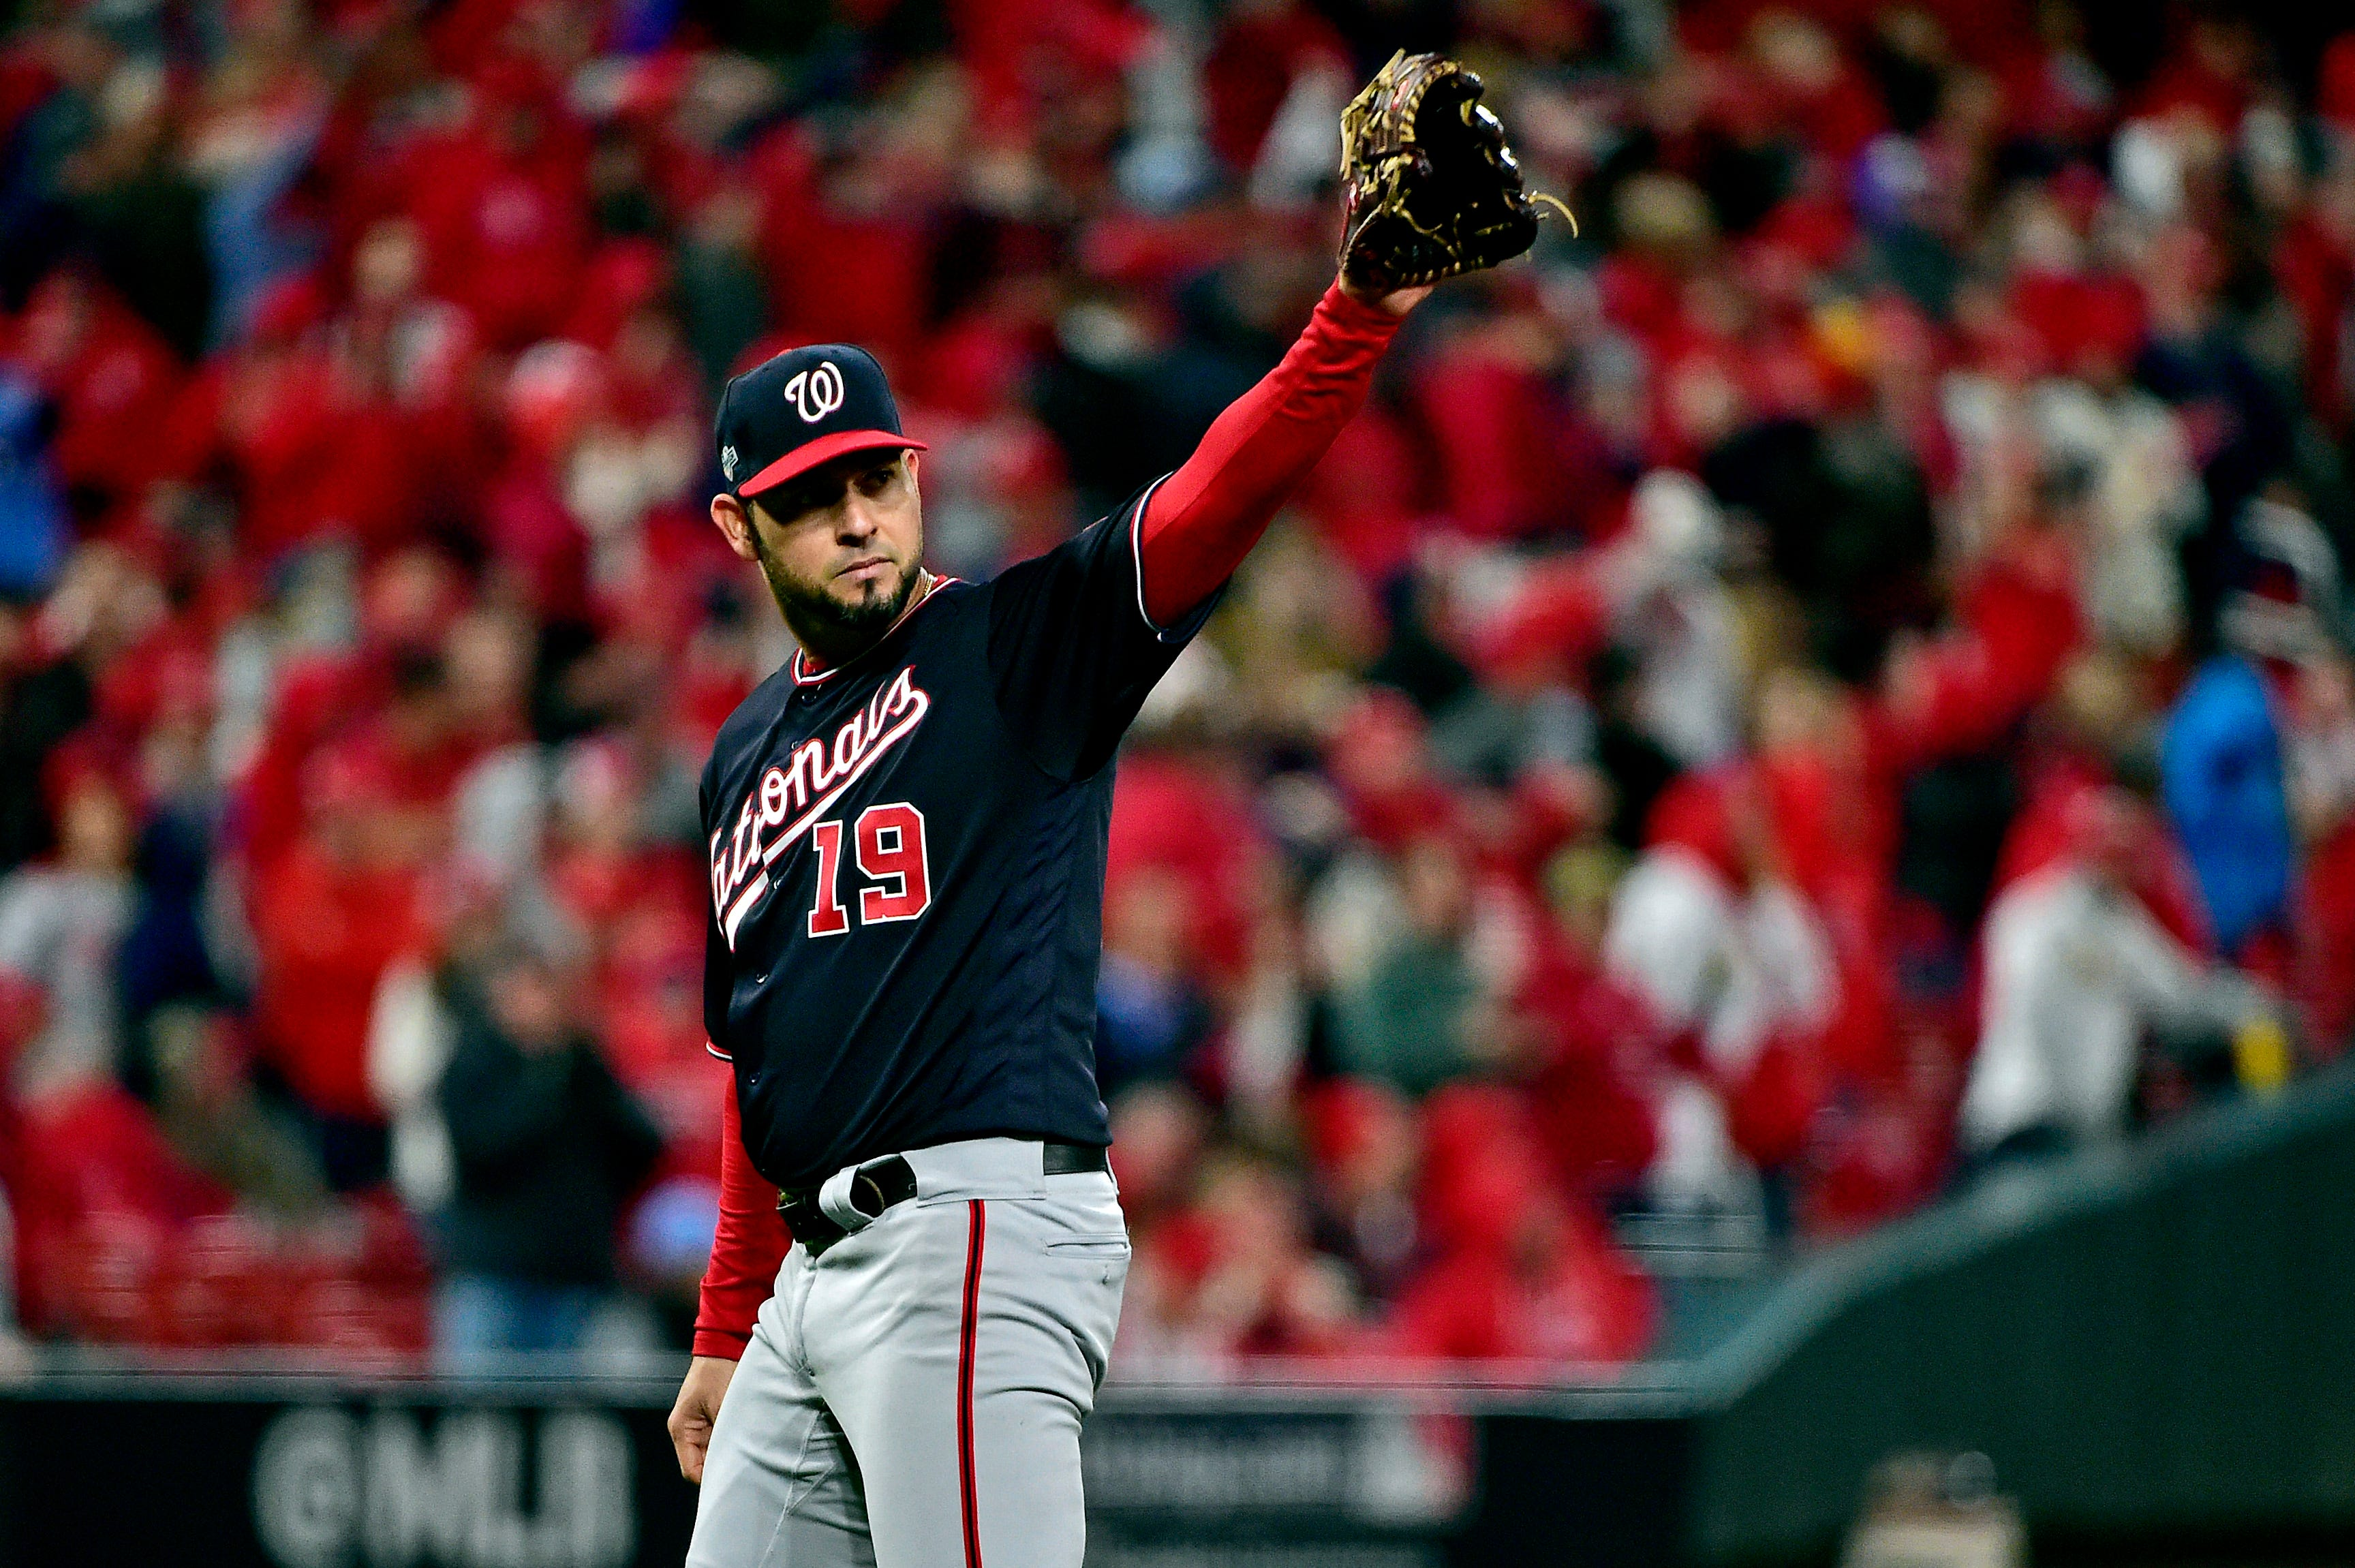 Anibal Sanchez loses no-hitter in eighth inning, Nationals beat Cardinals in Game 1